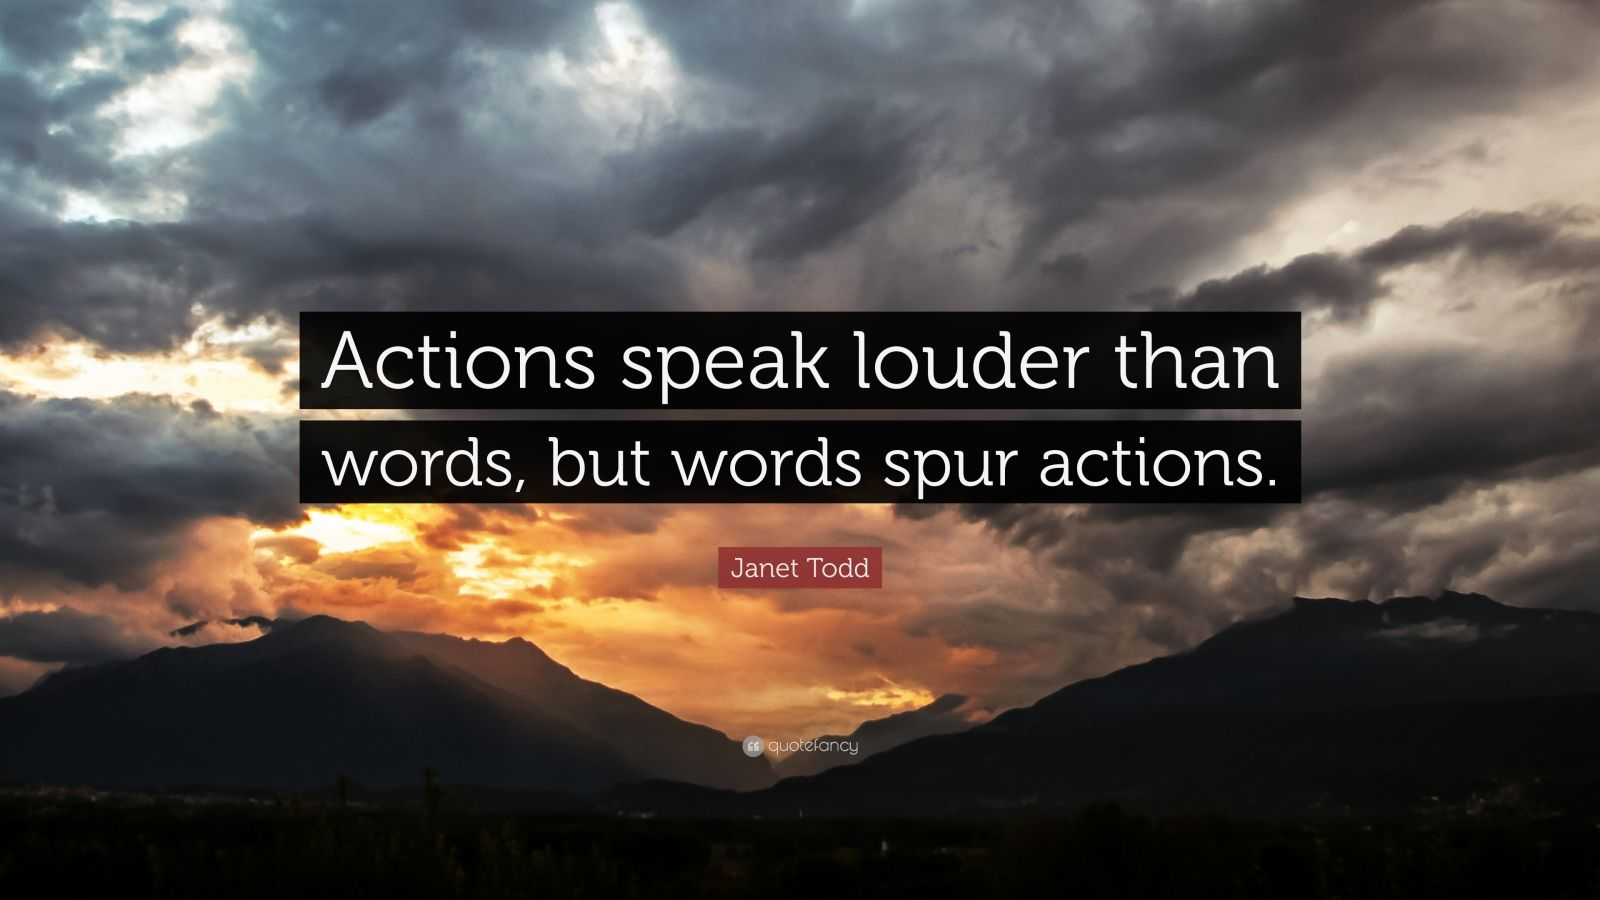 actions speak louder than words 7 It takes action to really make a difference in the world these quotes about actions being louder than words will remind you of the endurance and willpower that is needed.